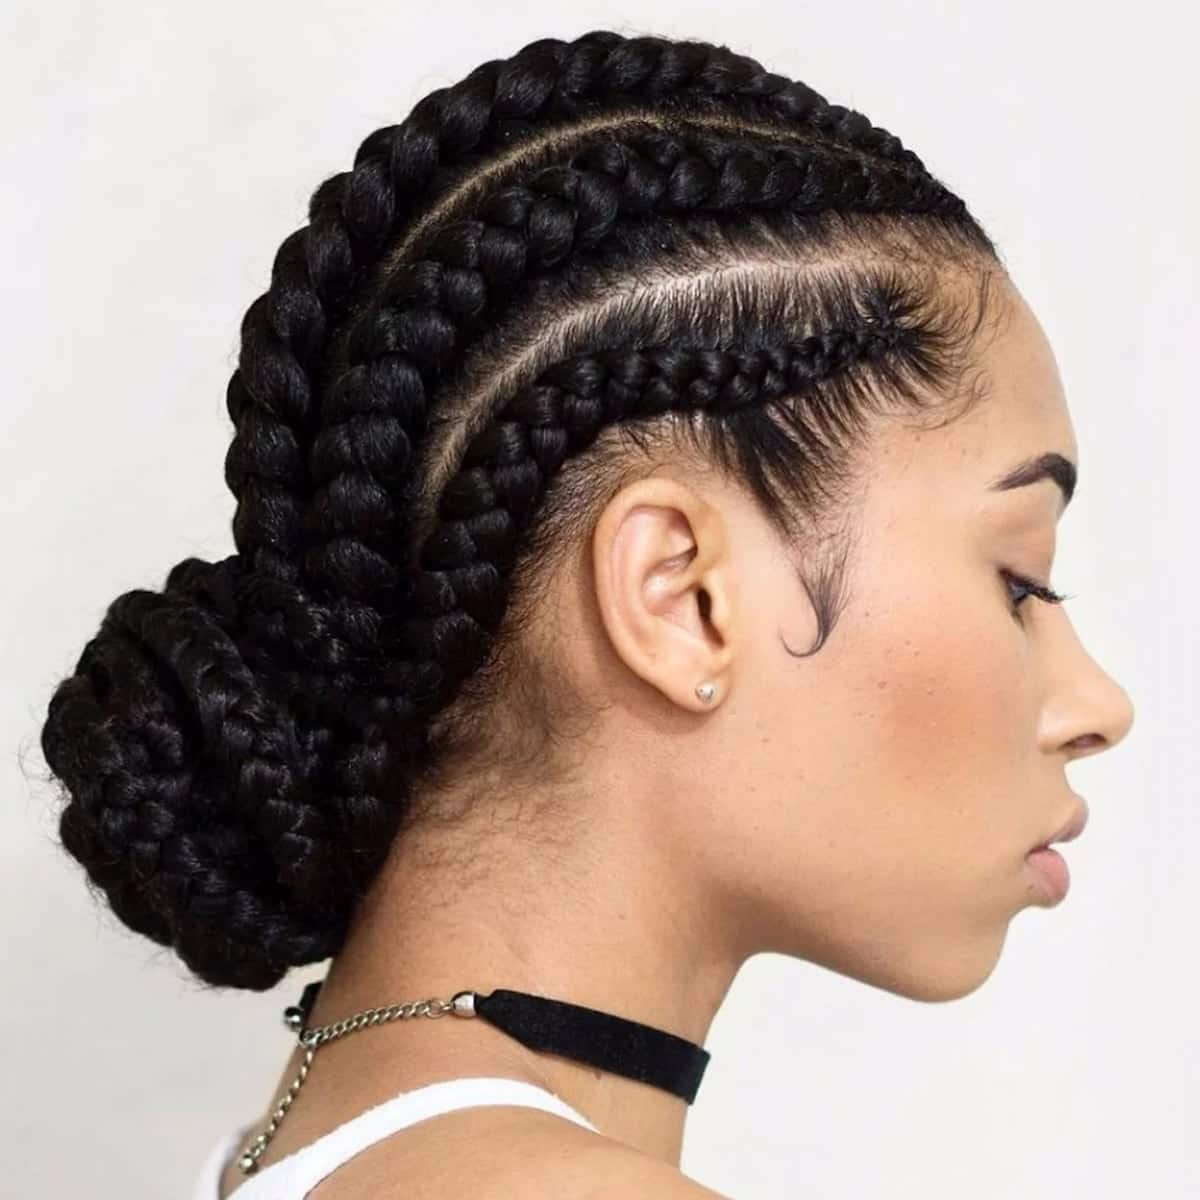 cornrow hair style types of braids and braids hairstyles in yen gh 1592 | 3o3bpd3dags09m7ob